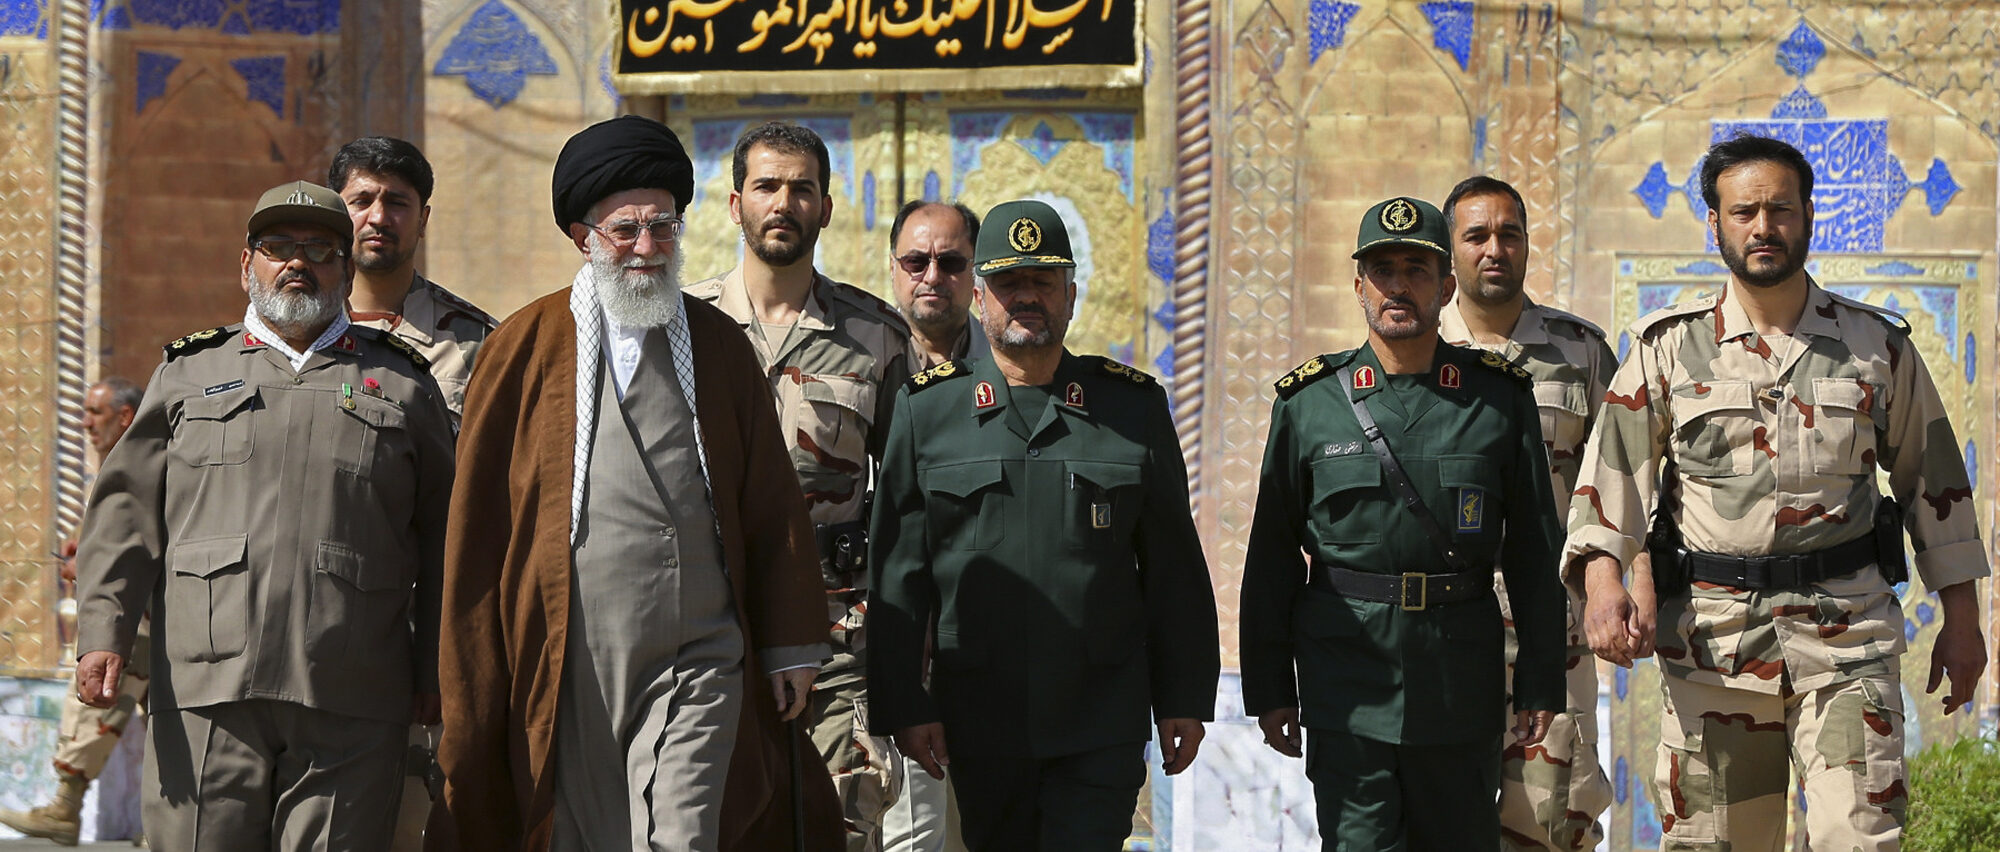 In this picture released by an official website of the office of the Iranian supreme leader on Wednesday, May 20, 2015, Supreme Leader Ayatollah Ali Khamenei, second left, attends a graduation ceremony of Revolutionary Guard officers in Tehran, Iran, as he is accompanied by Chief of the General Staff of Iran's Armed Forces, Hasan Firouzabadi, left, and Revolutionary Guard commander Mohammad Ali Jafar, center. Iran's supreme leader vowed Wednesday he will not allow international inspection of Iran's military sites or access to Iranian scientists under any nuclear agreement with world powers. (Office of the Iranian Supreme Leader via AP)